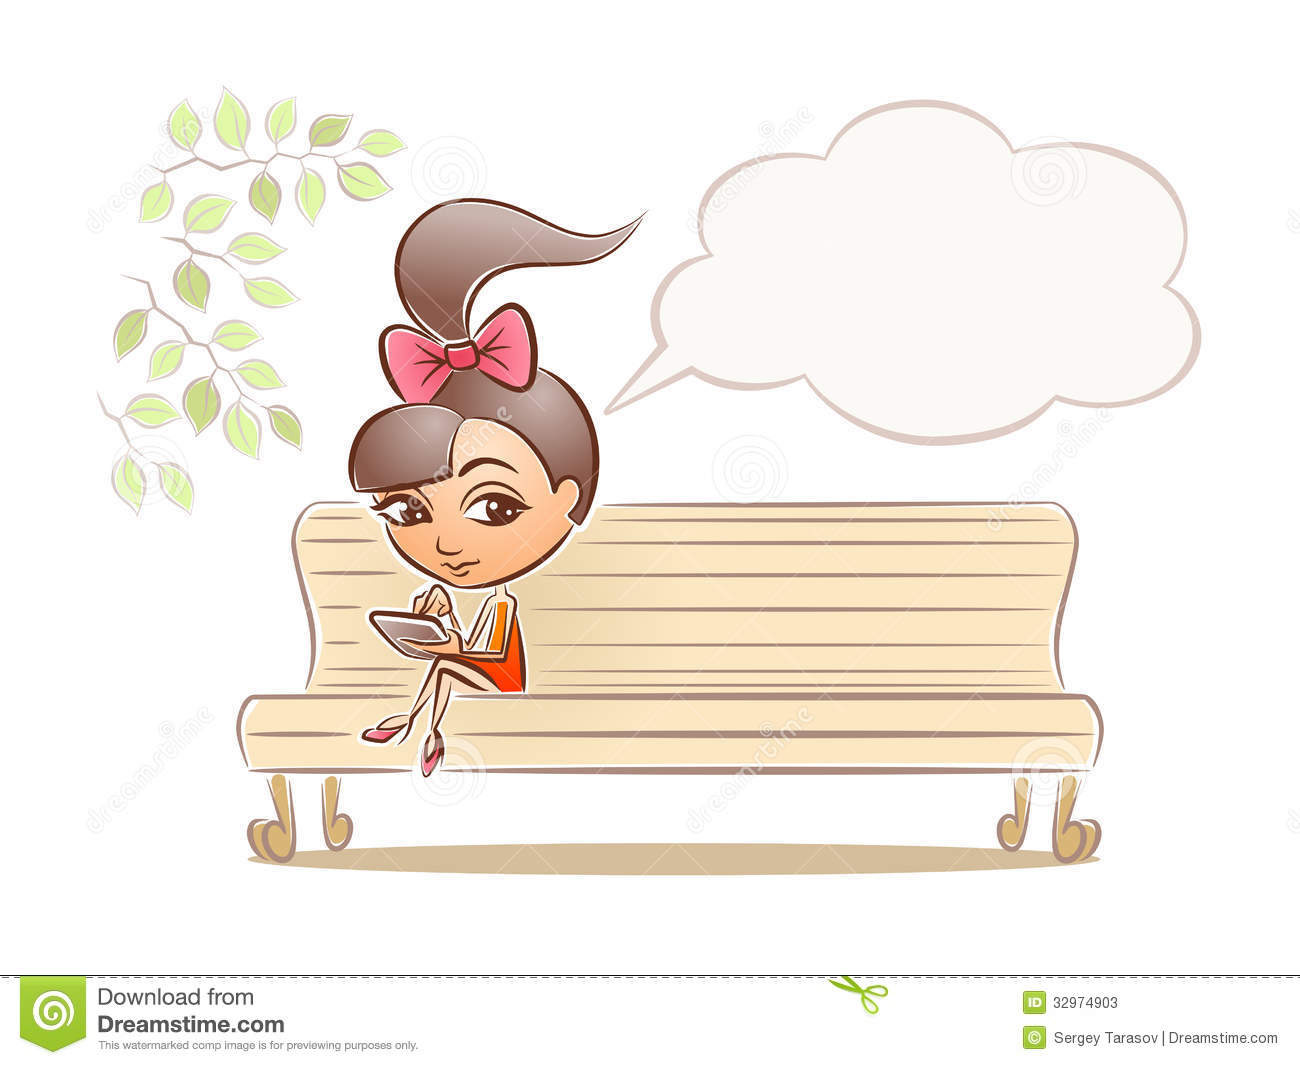 Cartoon Park Bench Clipart - Clipart Kid